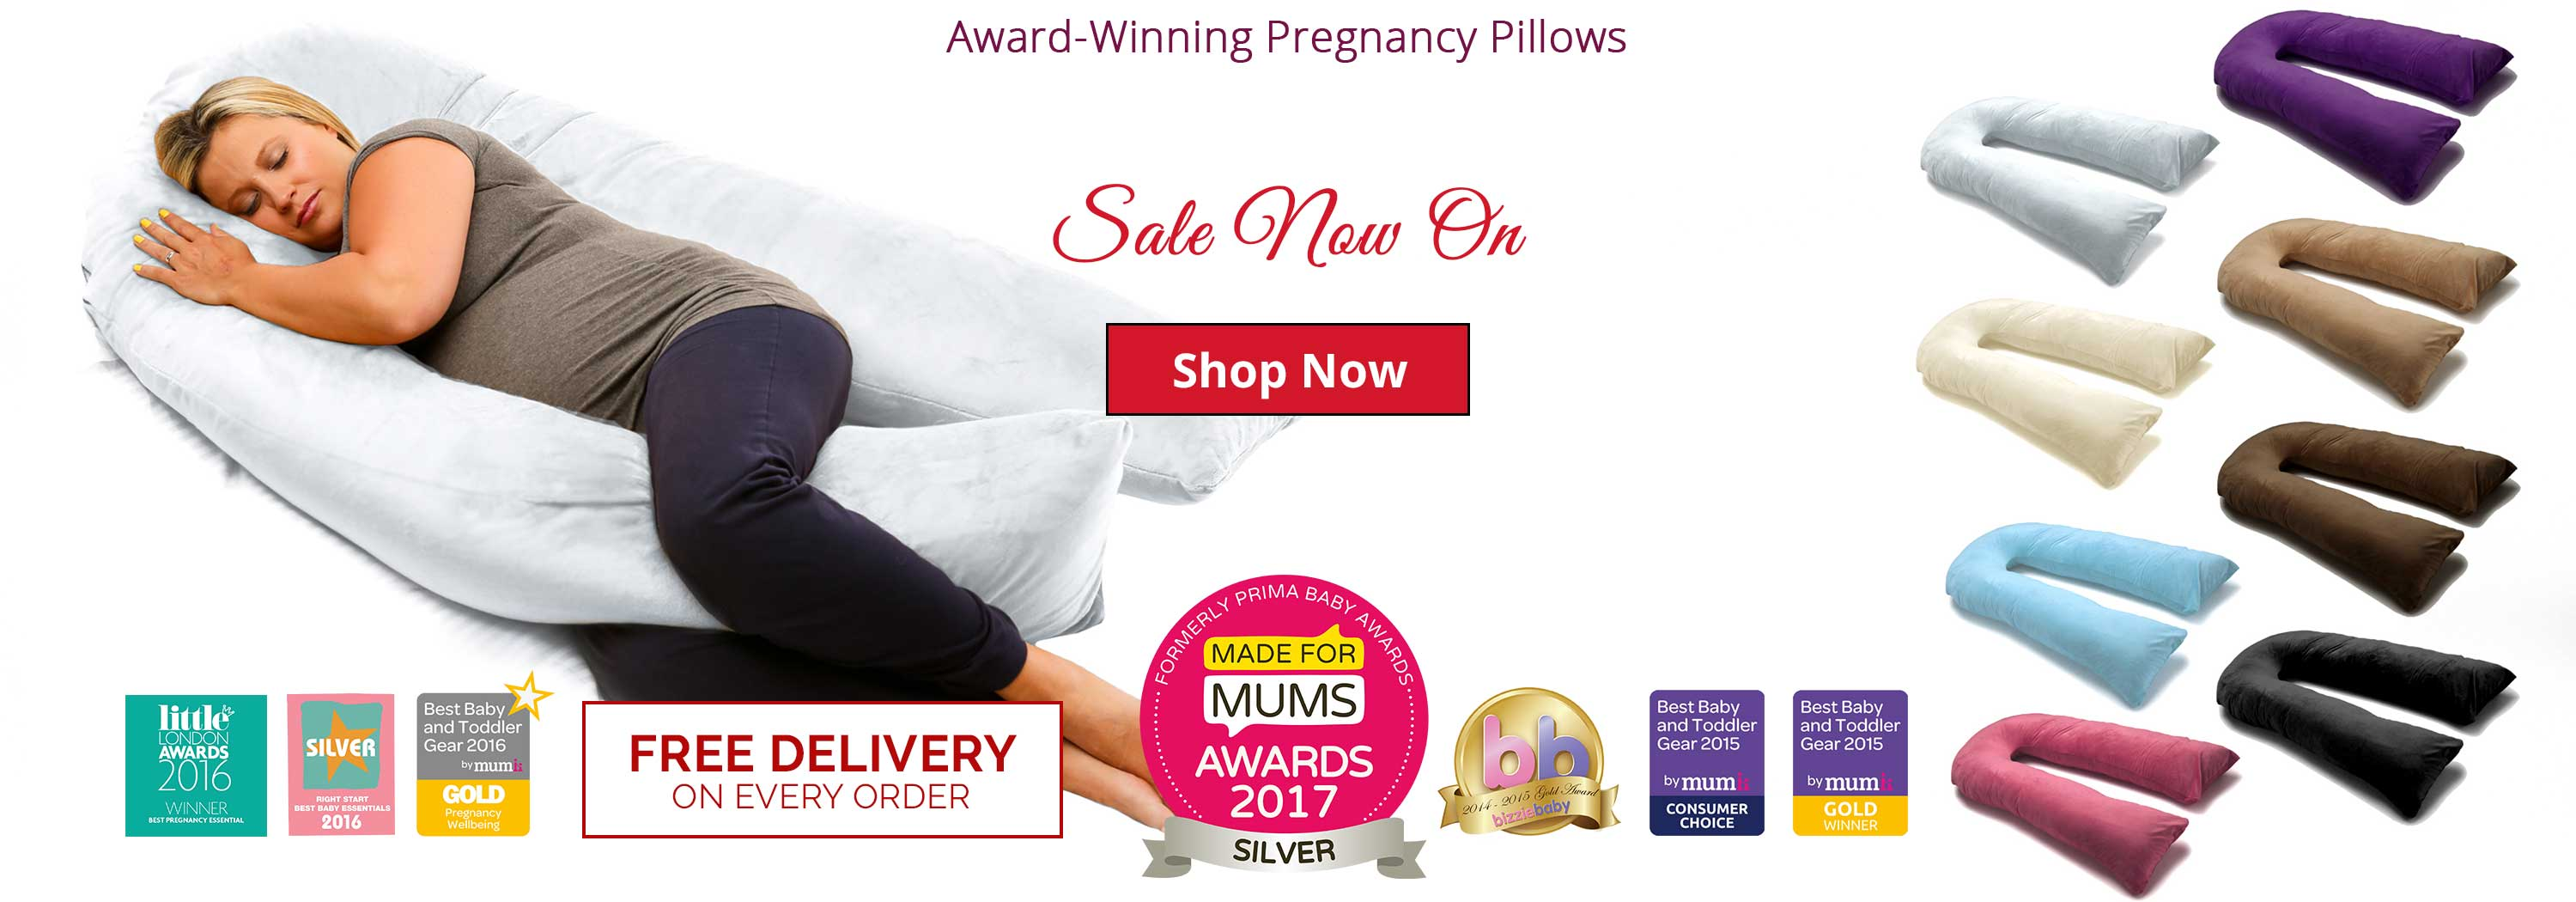 Award-Winning Pregnancy and Maternity Pillows